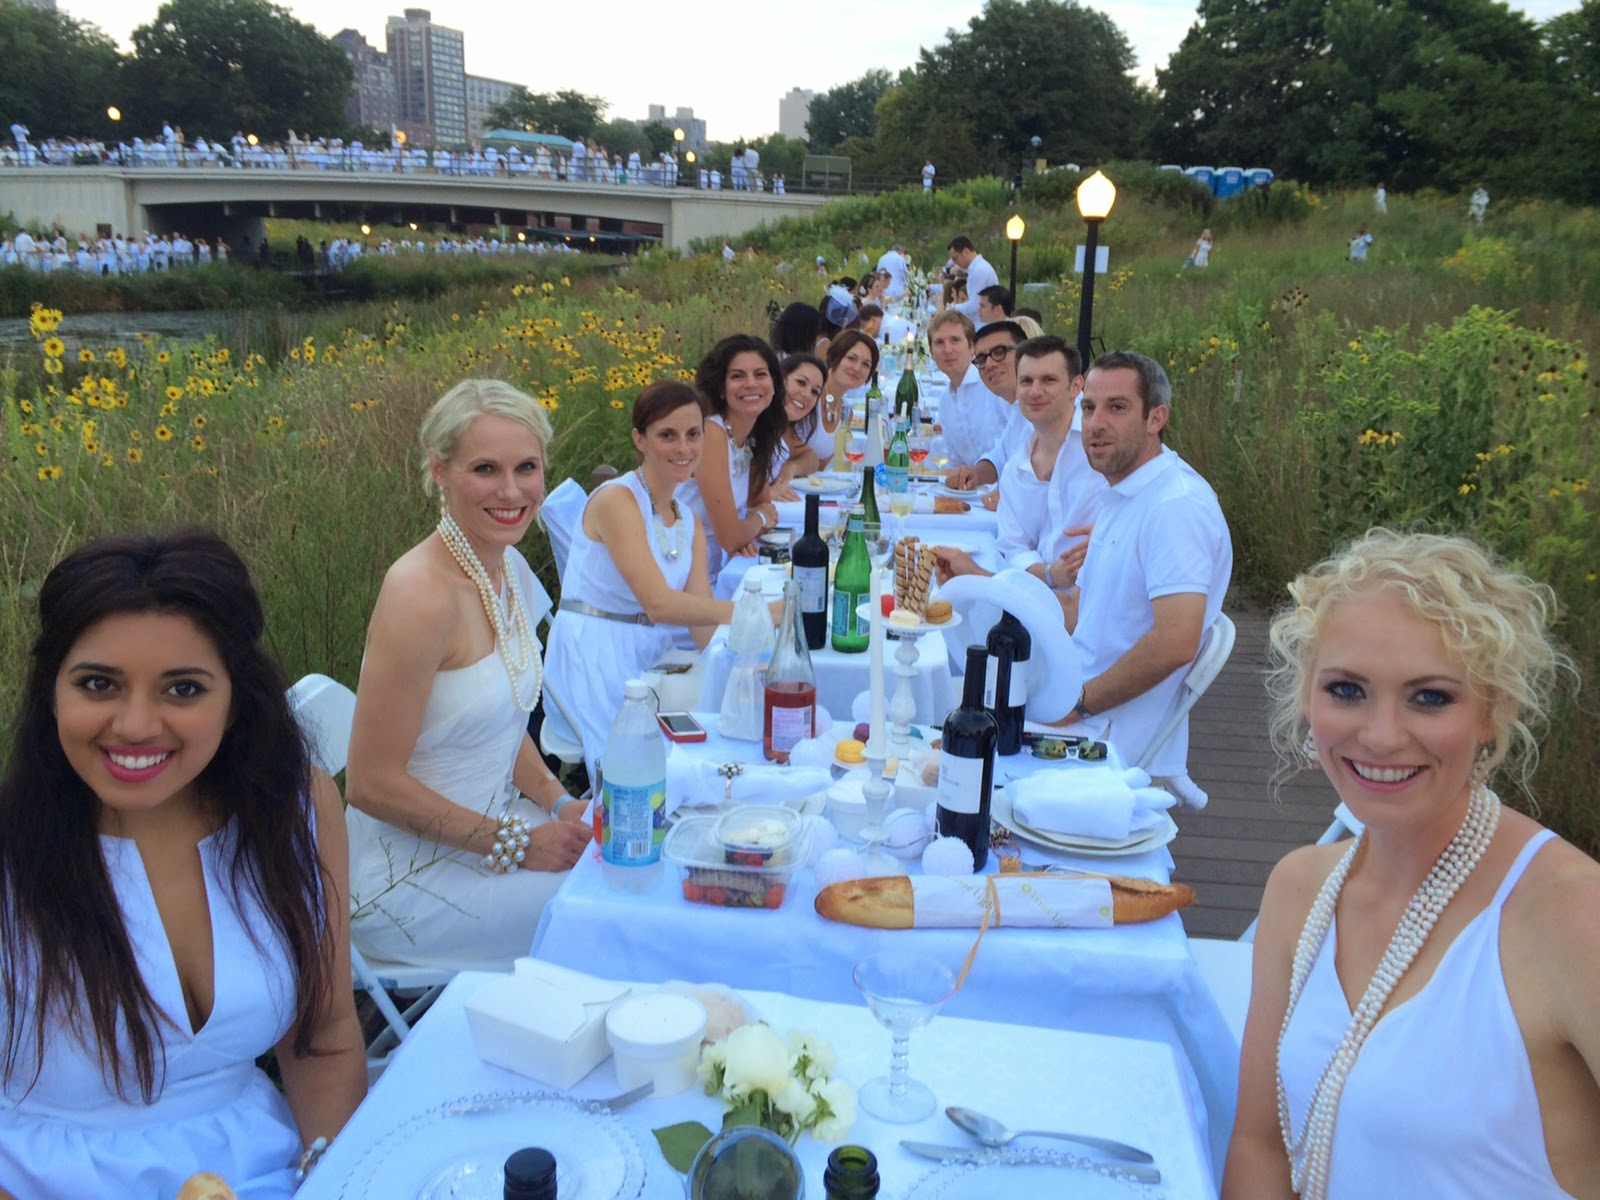 Diner en Blanc: Shot of the Bridge Over the Pond